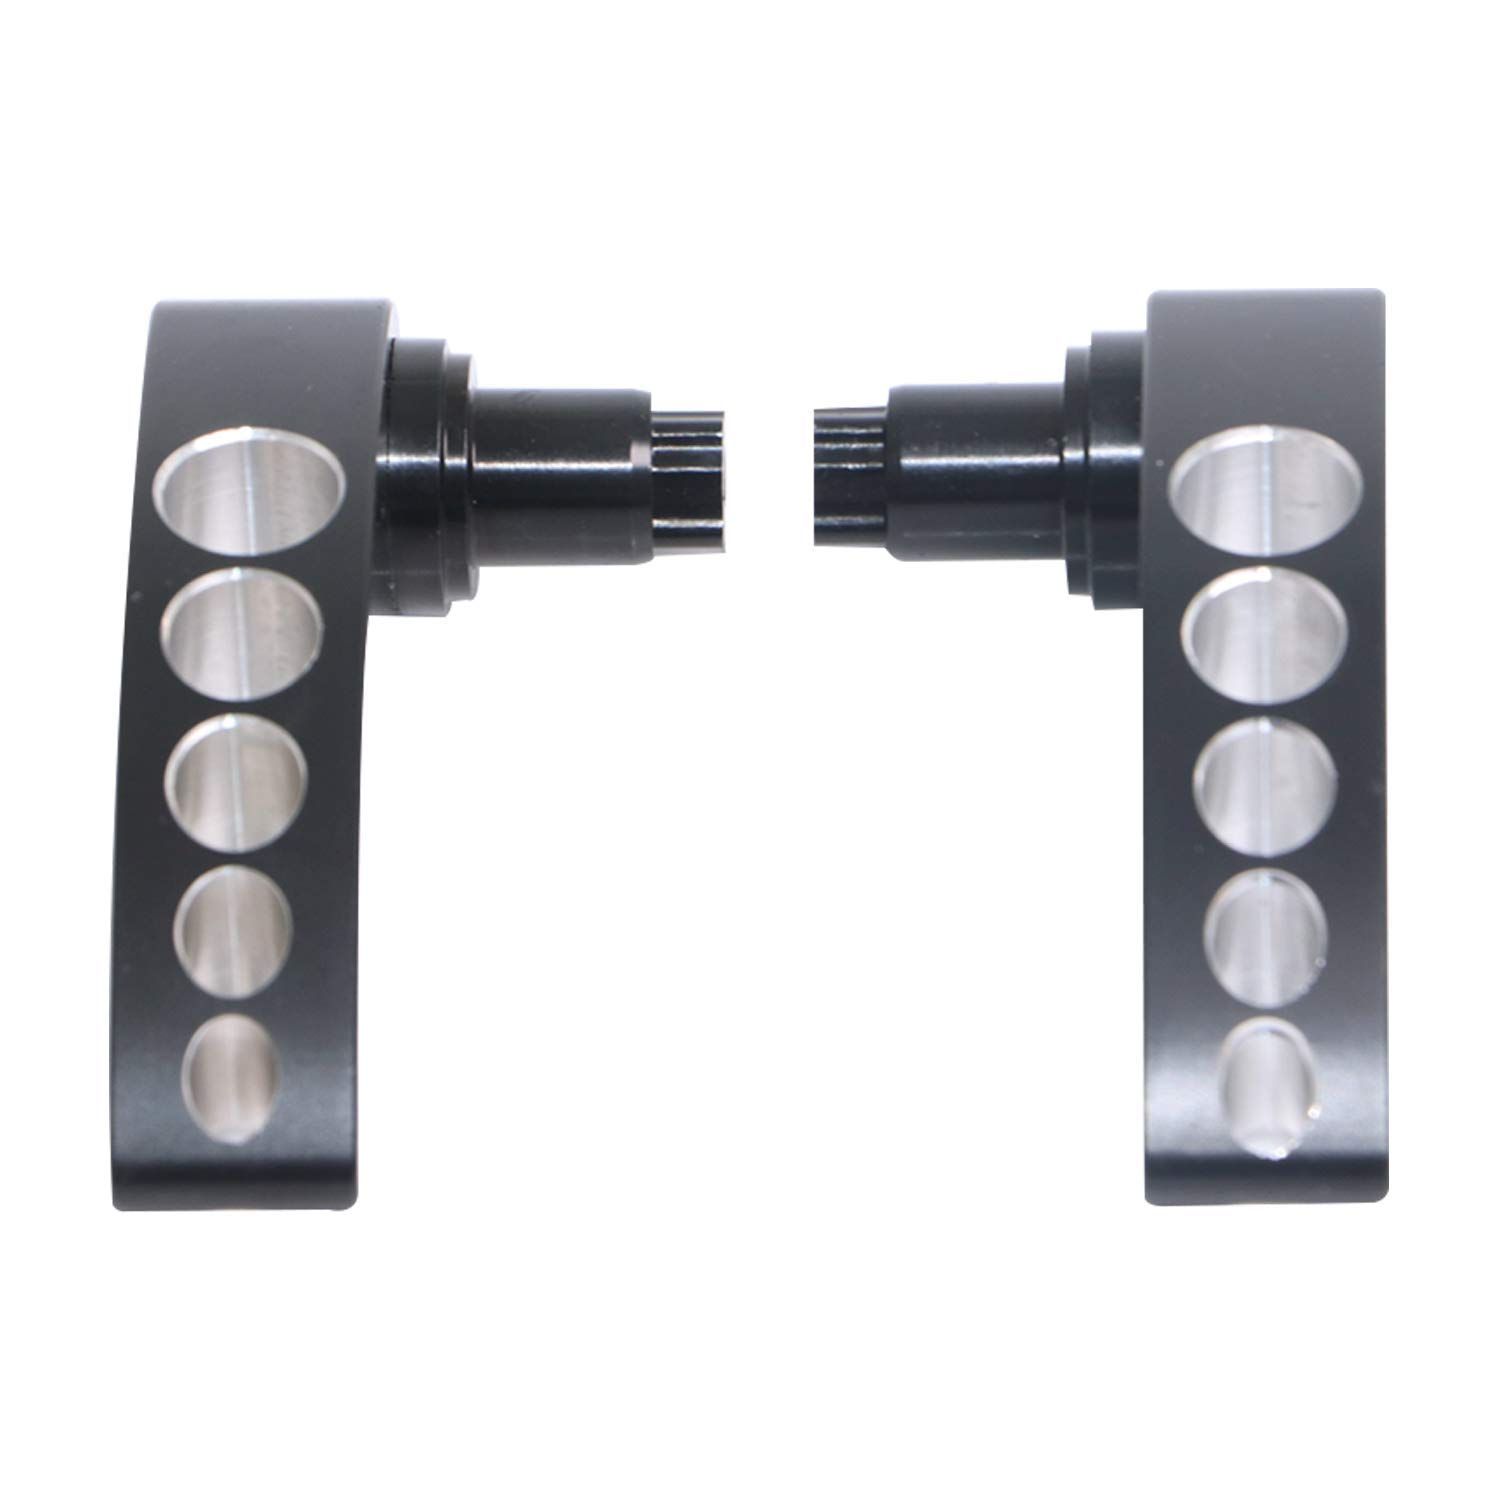 Saddlebag Lid Lifters Latch Handle Lever for Harley Touring Road King Street Glide 2014-2018